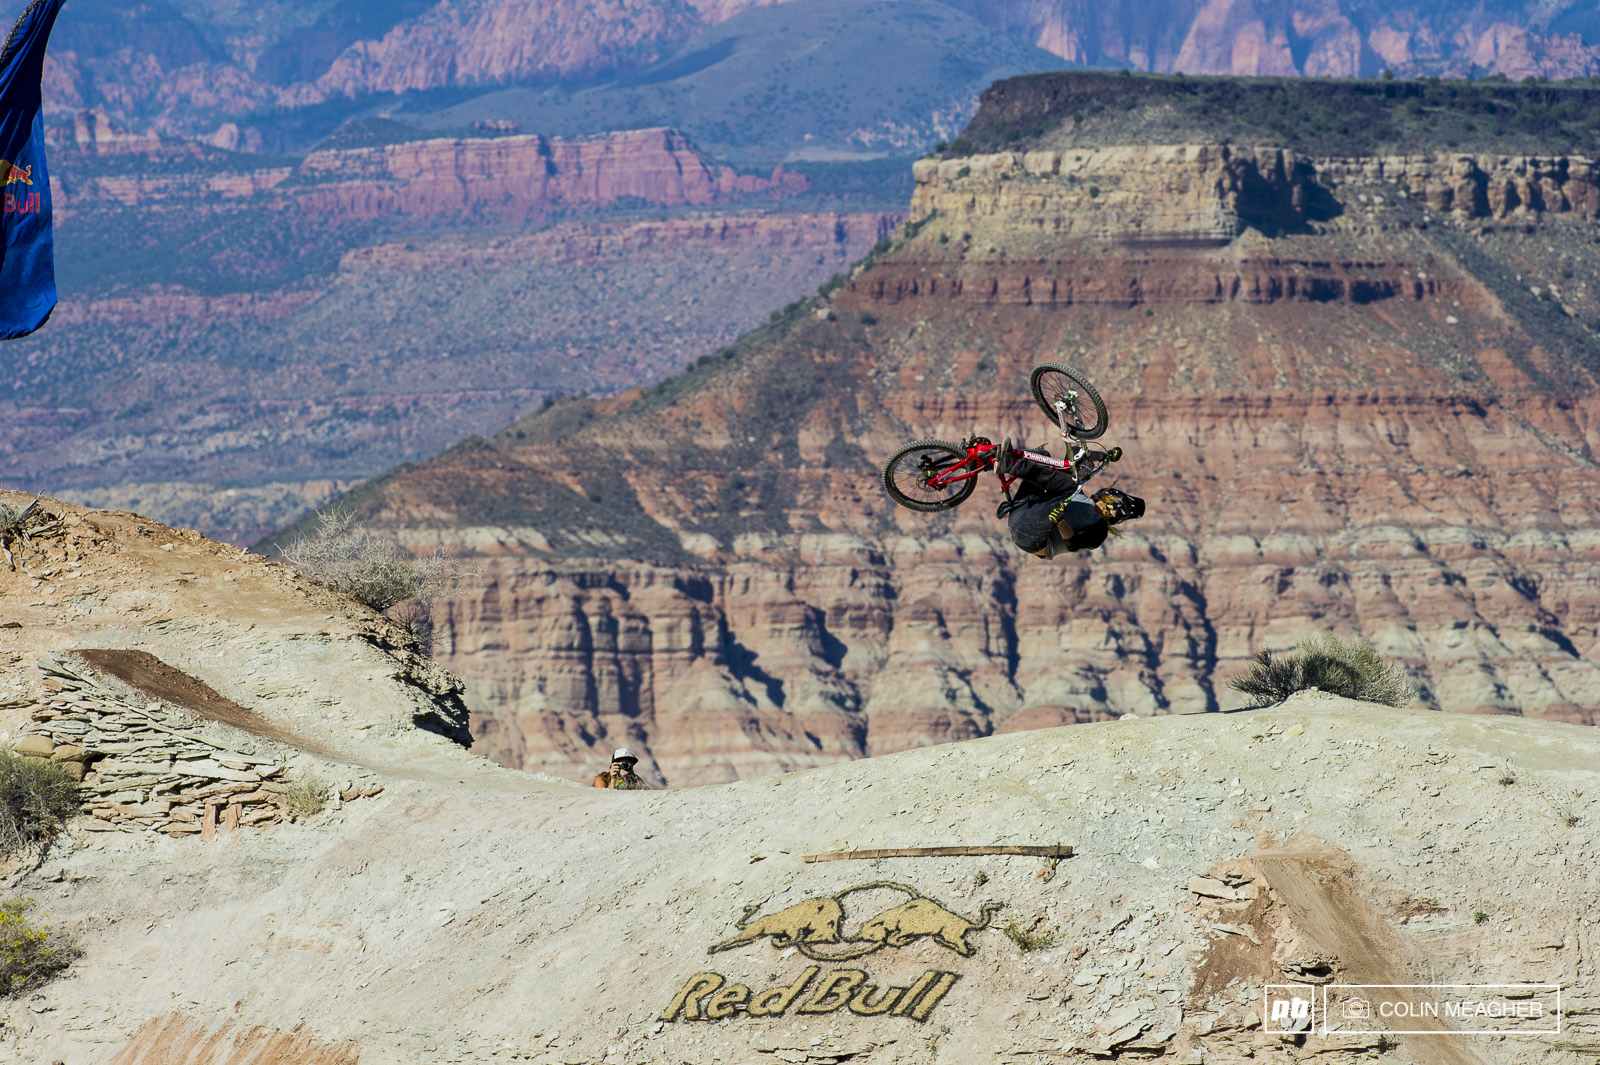 Kelly McGarry gettin upside down. How anyone that tall can pull a back flip on that small of a hit is beyond me.